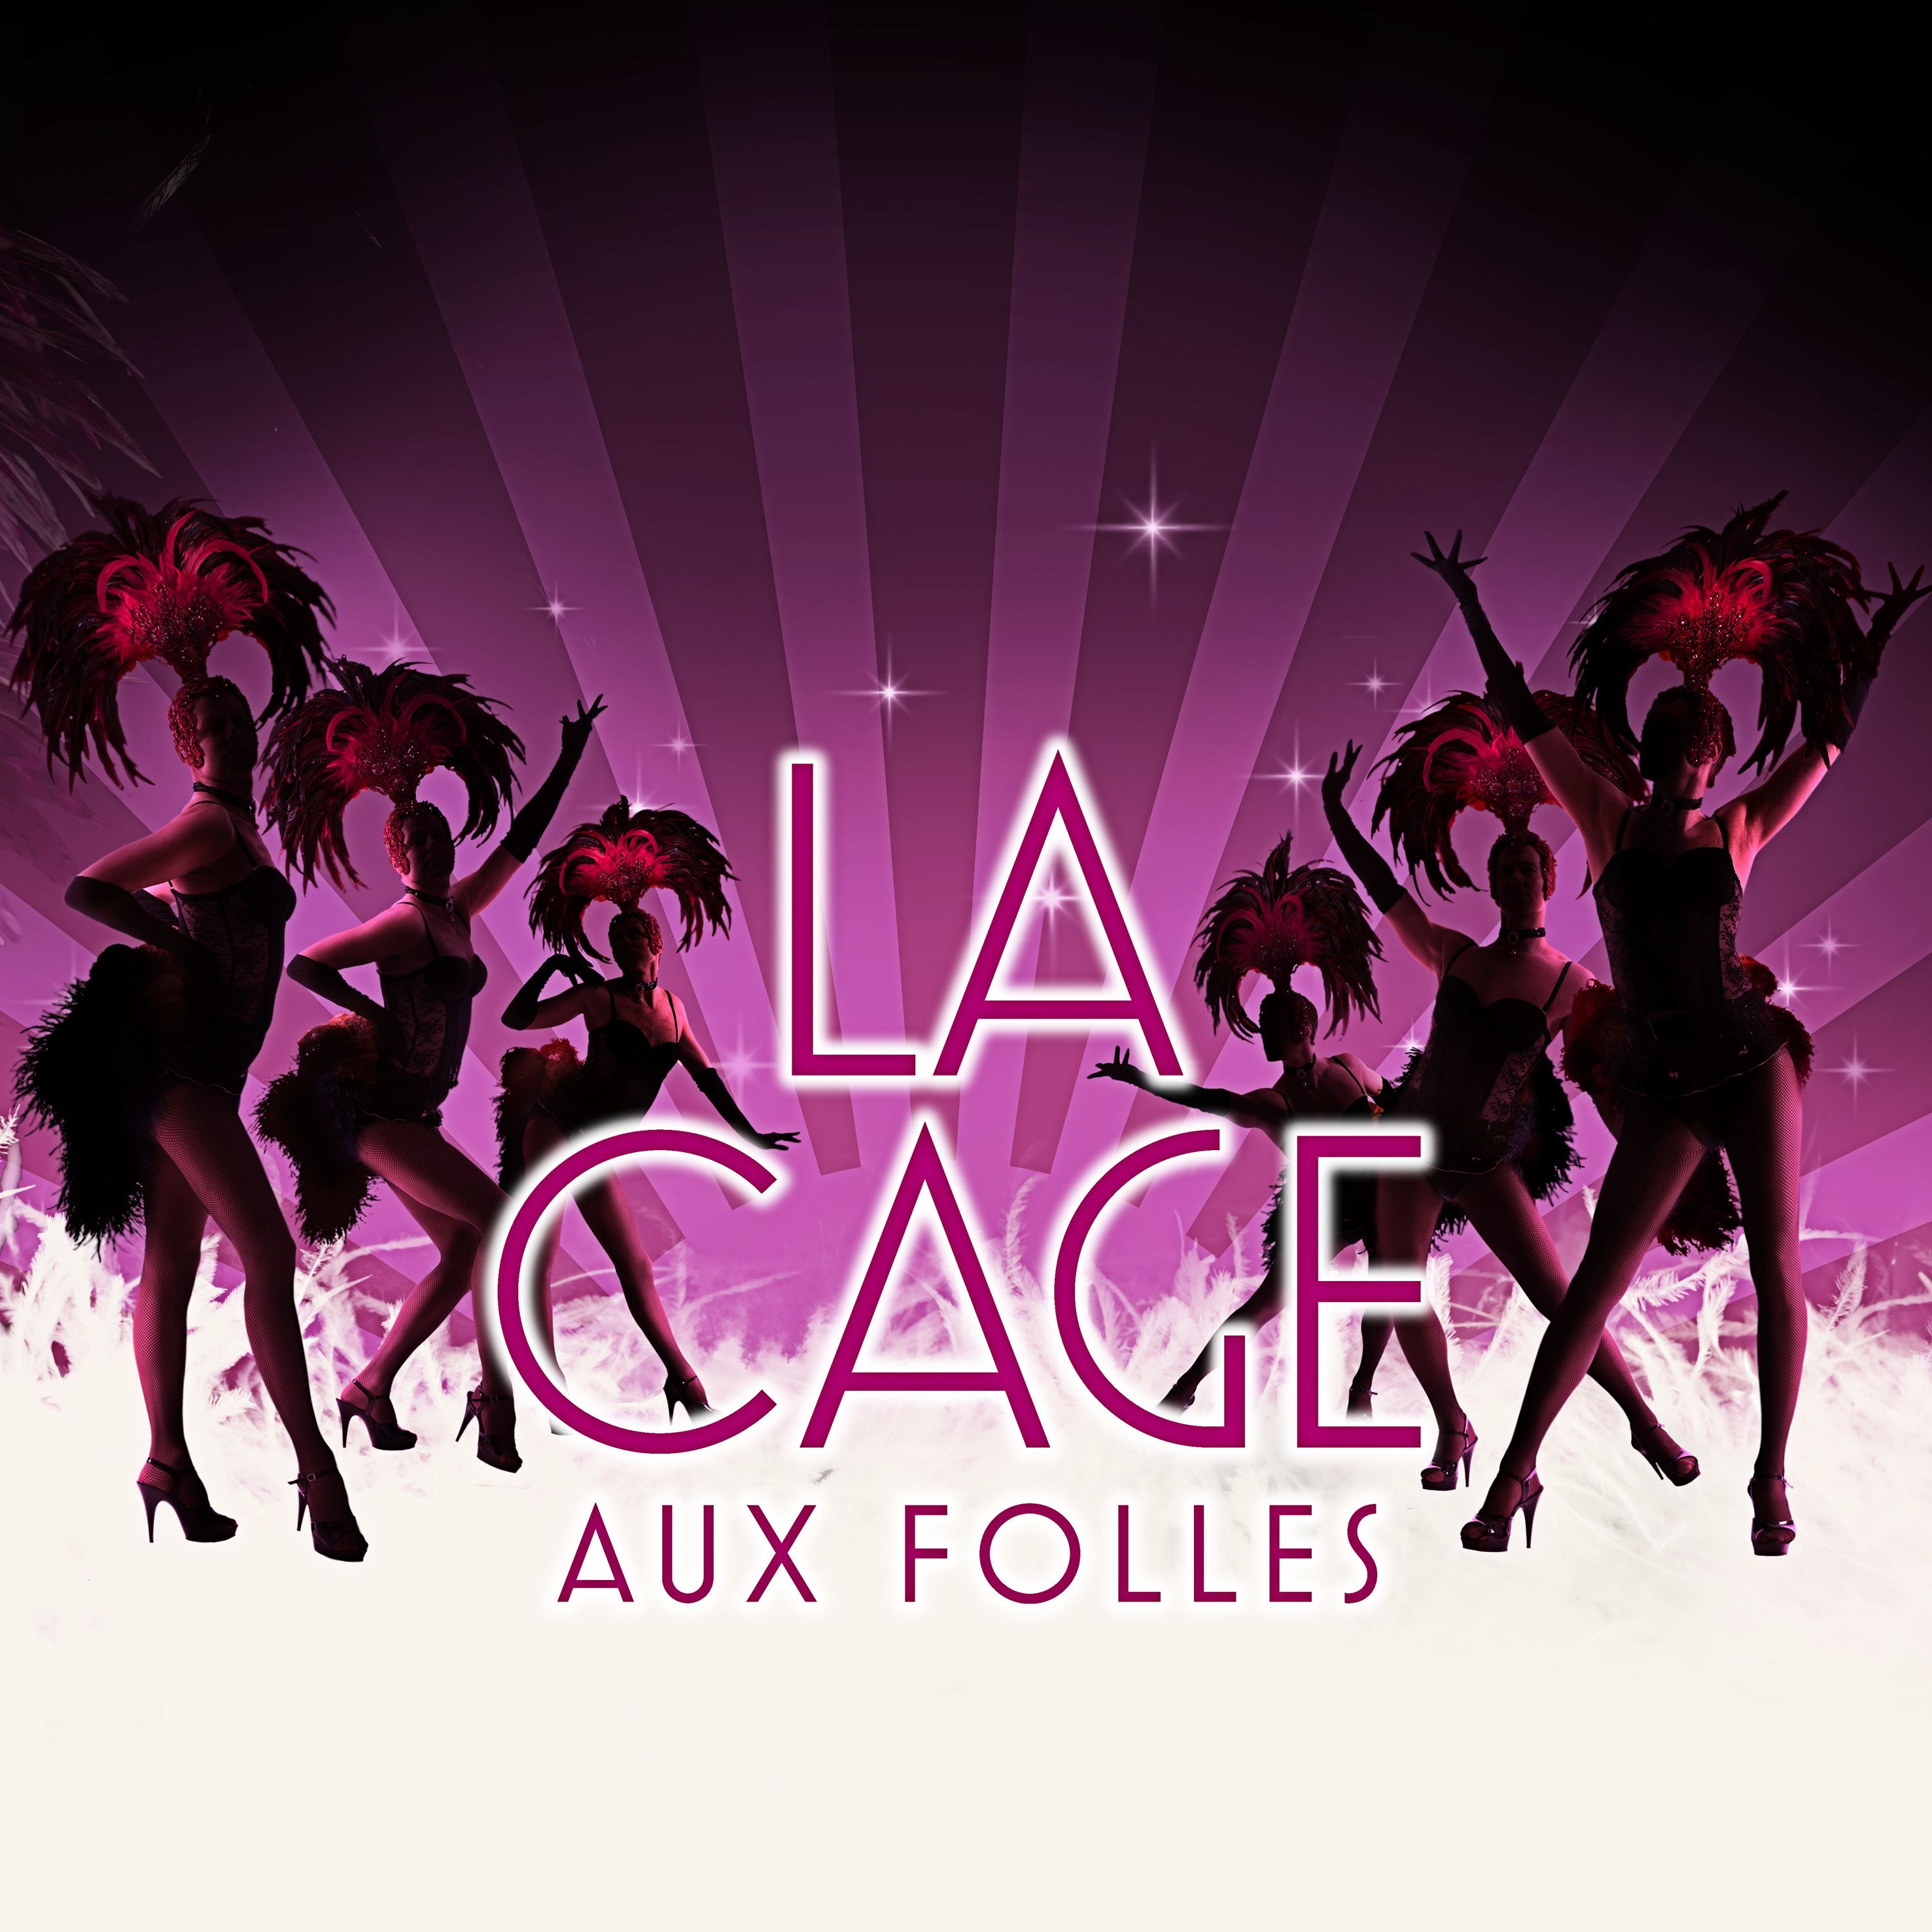 La Cage Aux Folles at The Gothenburg Opera